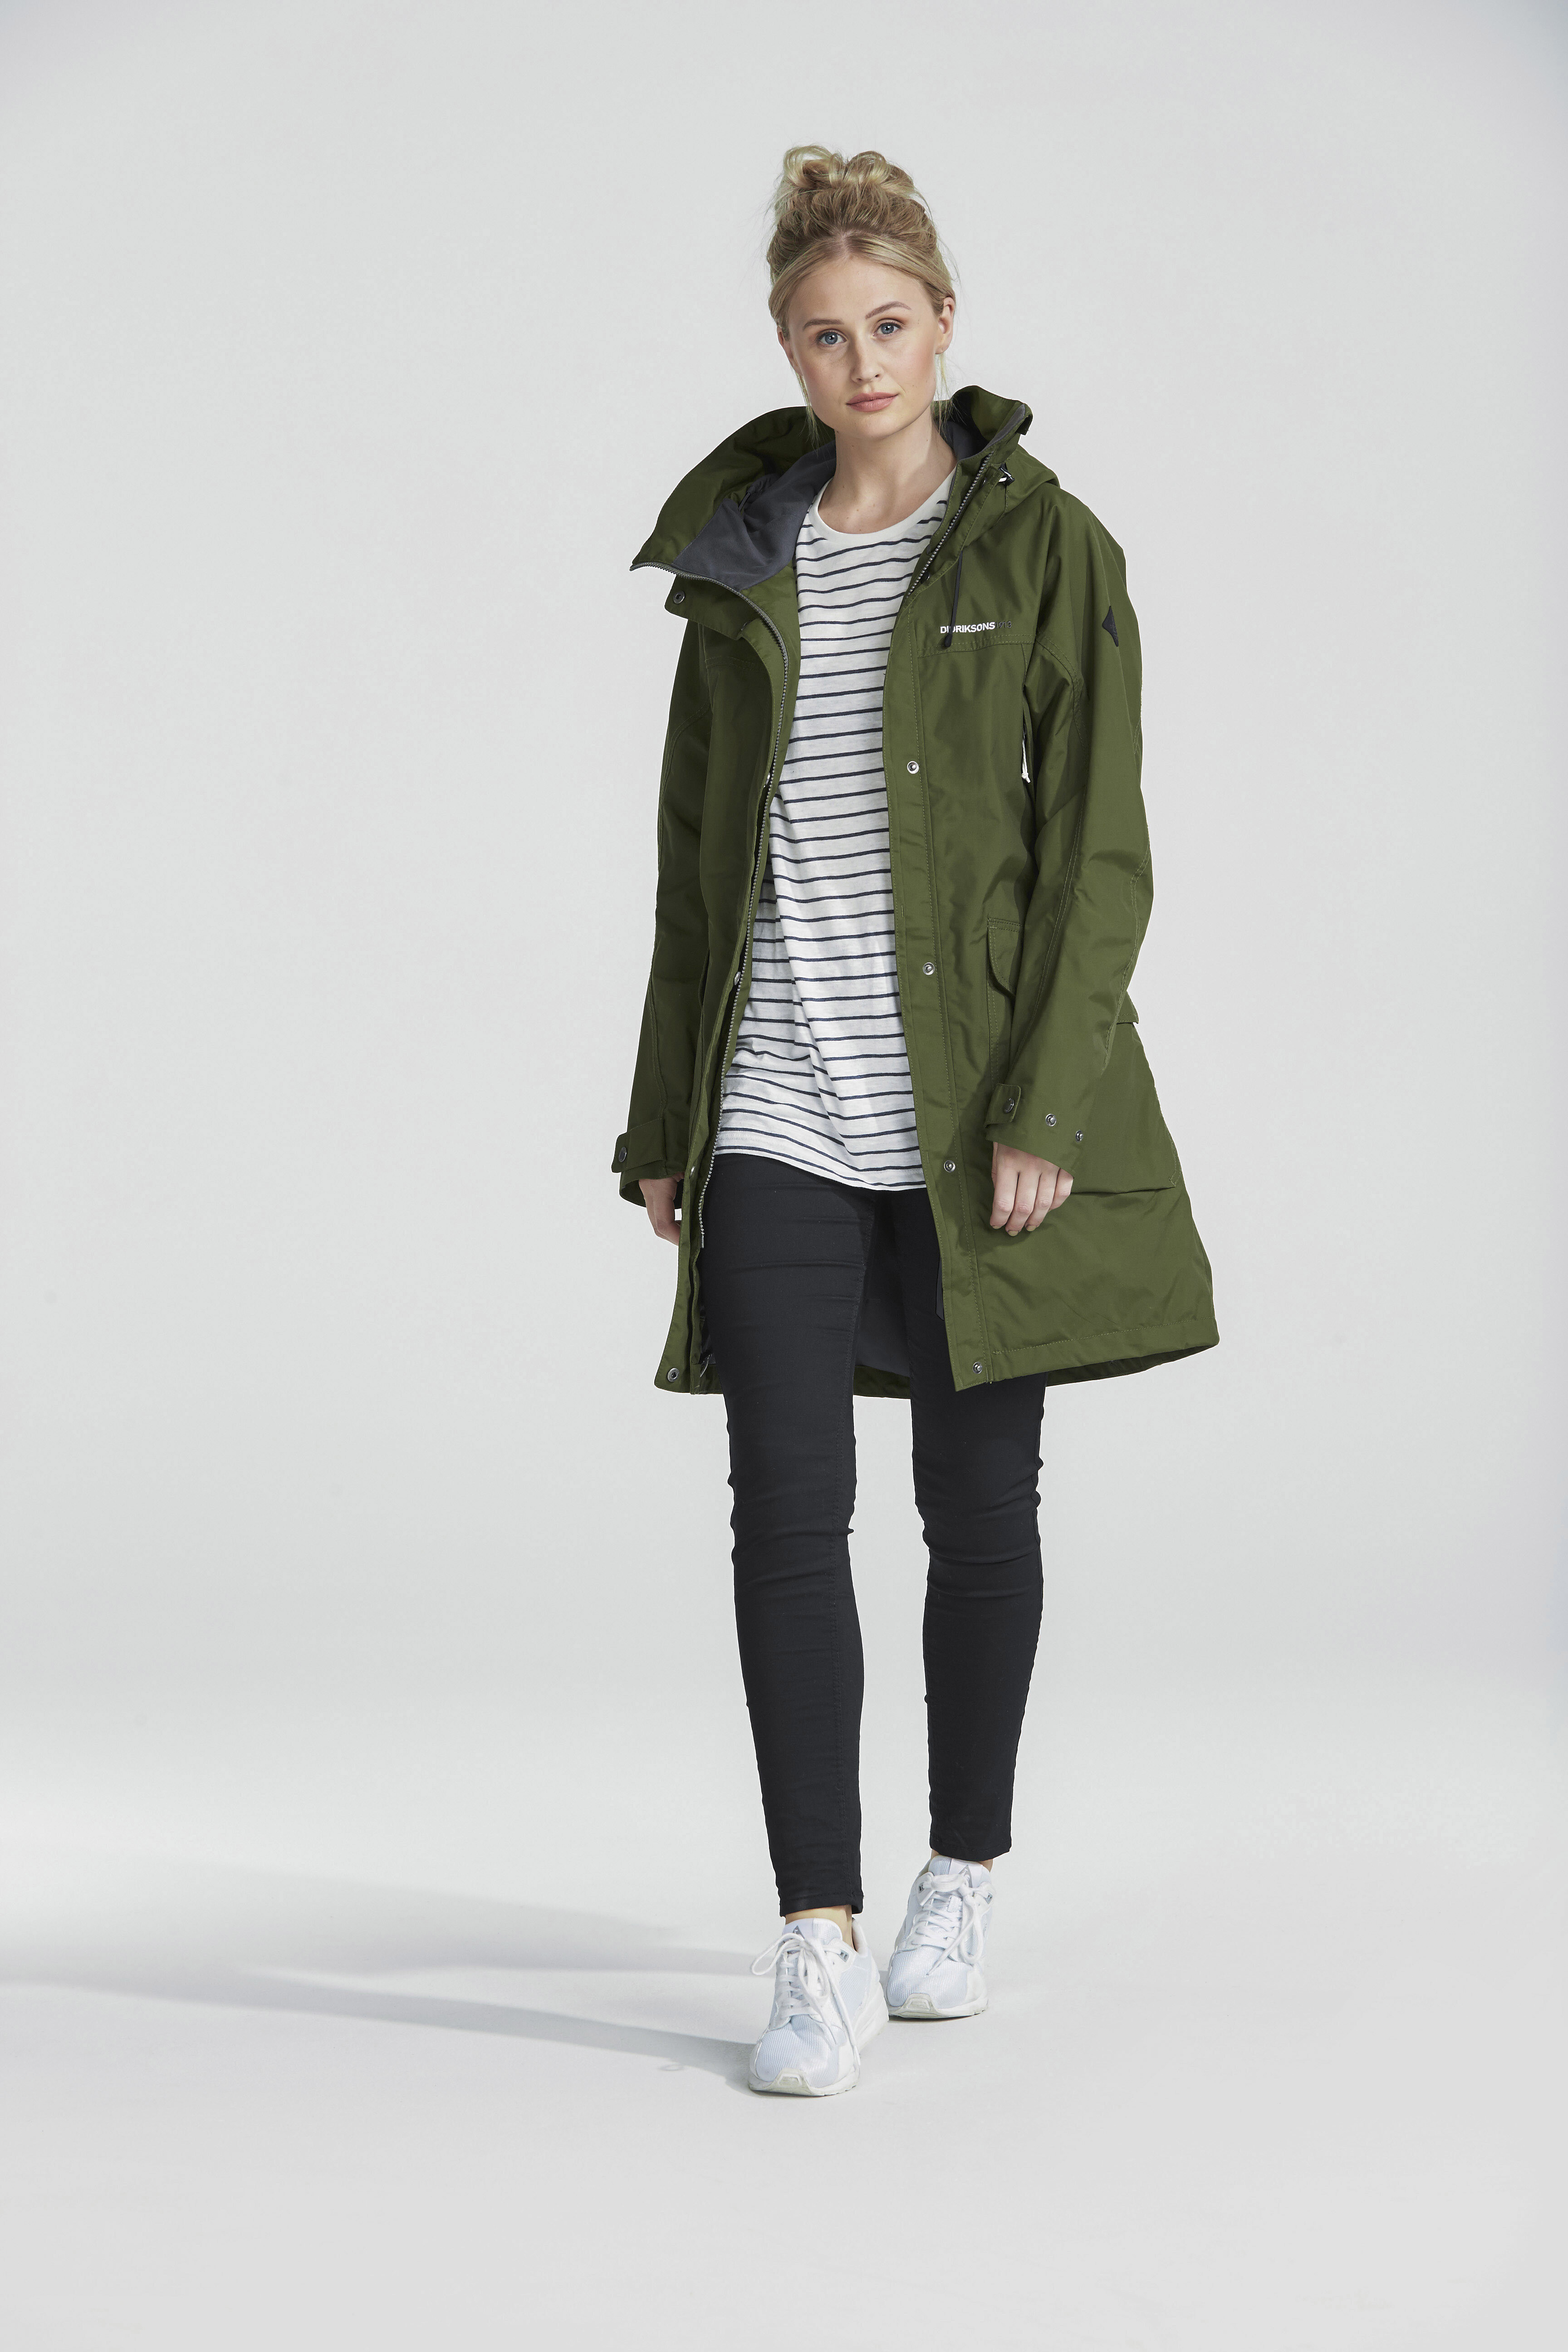 6270ba4be8d Didriksons 1913 Thelma Parka Women peat at Addnature.co.uk